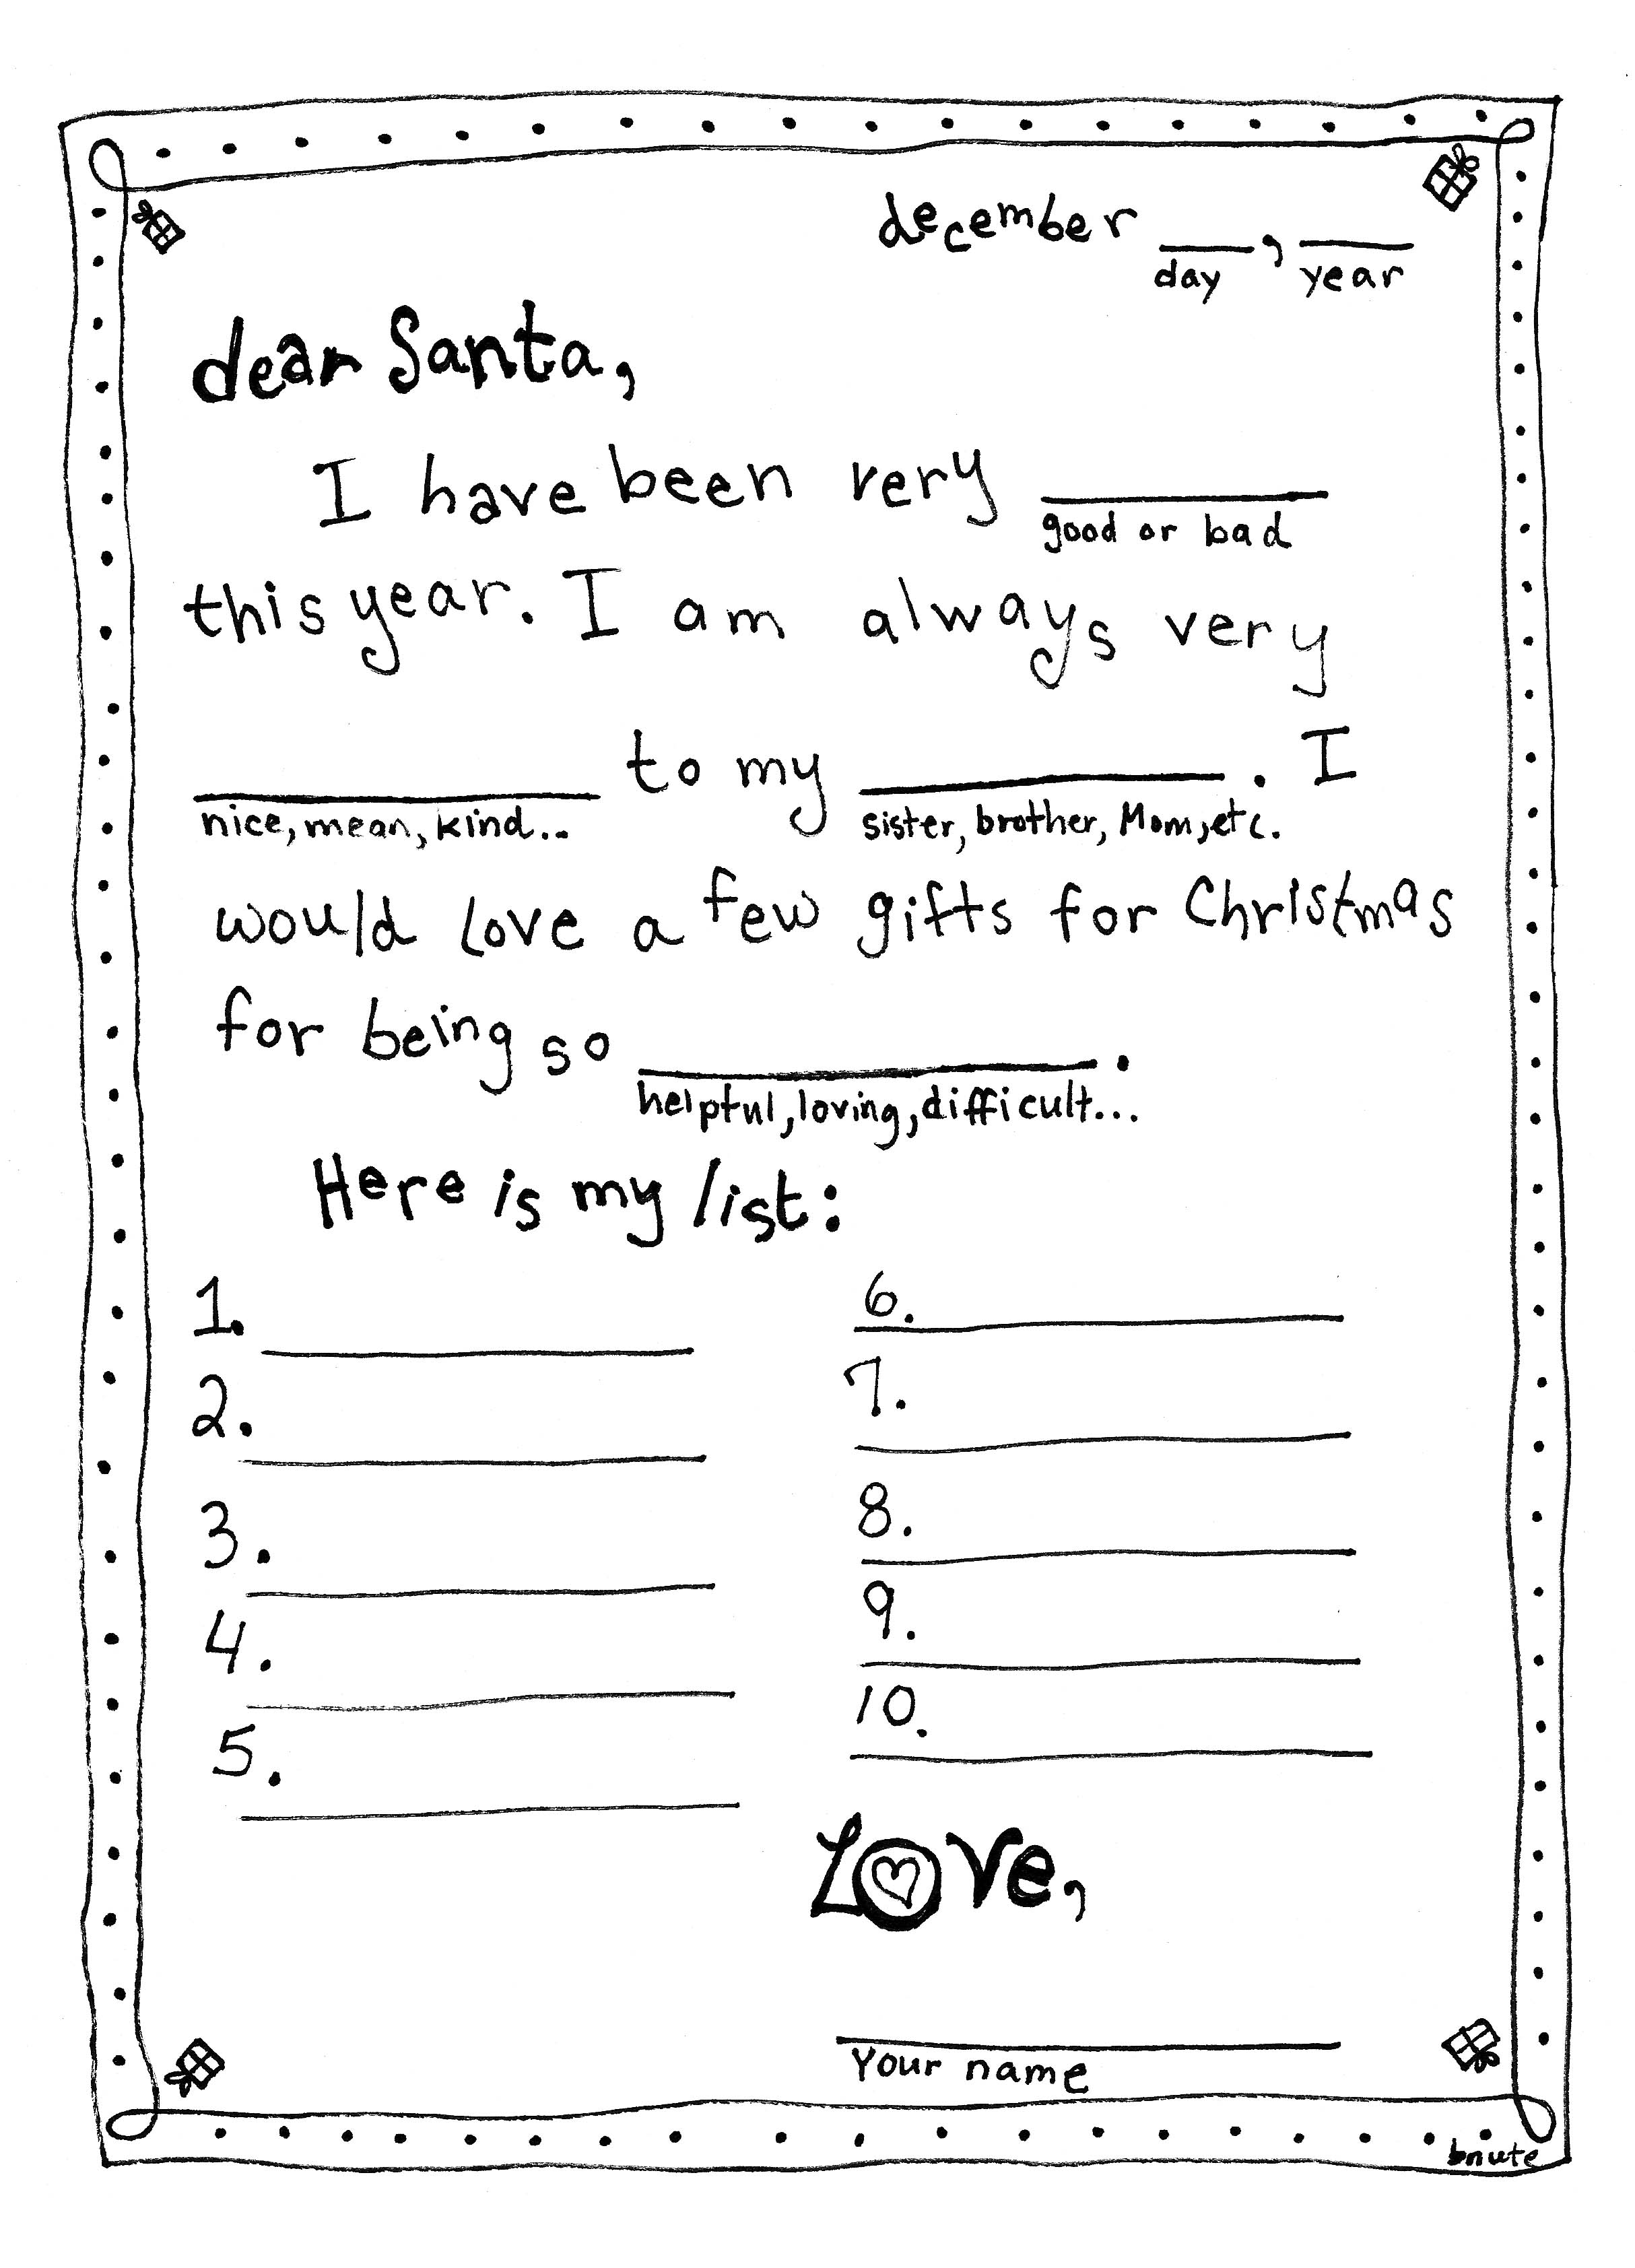 bnute productions: Letter to Santa - Mad Libs style